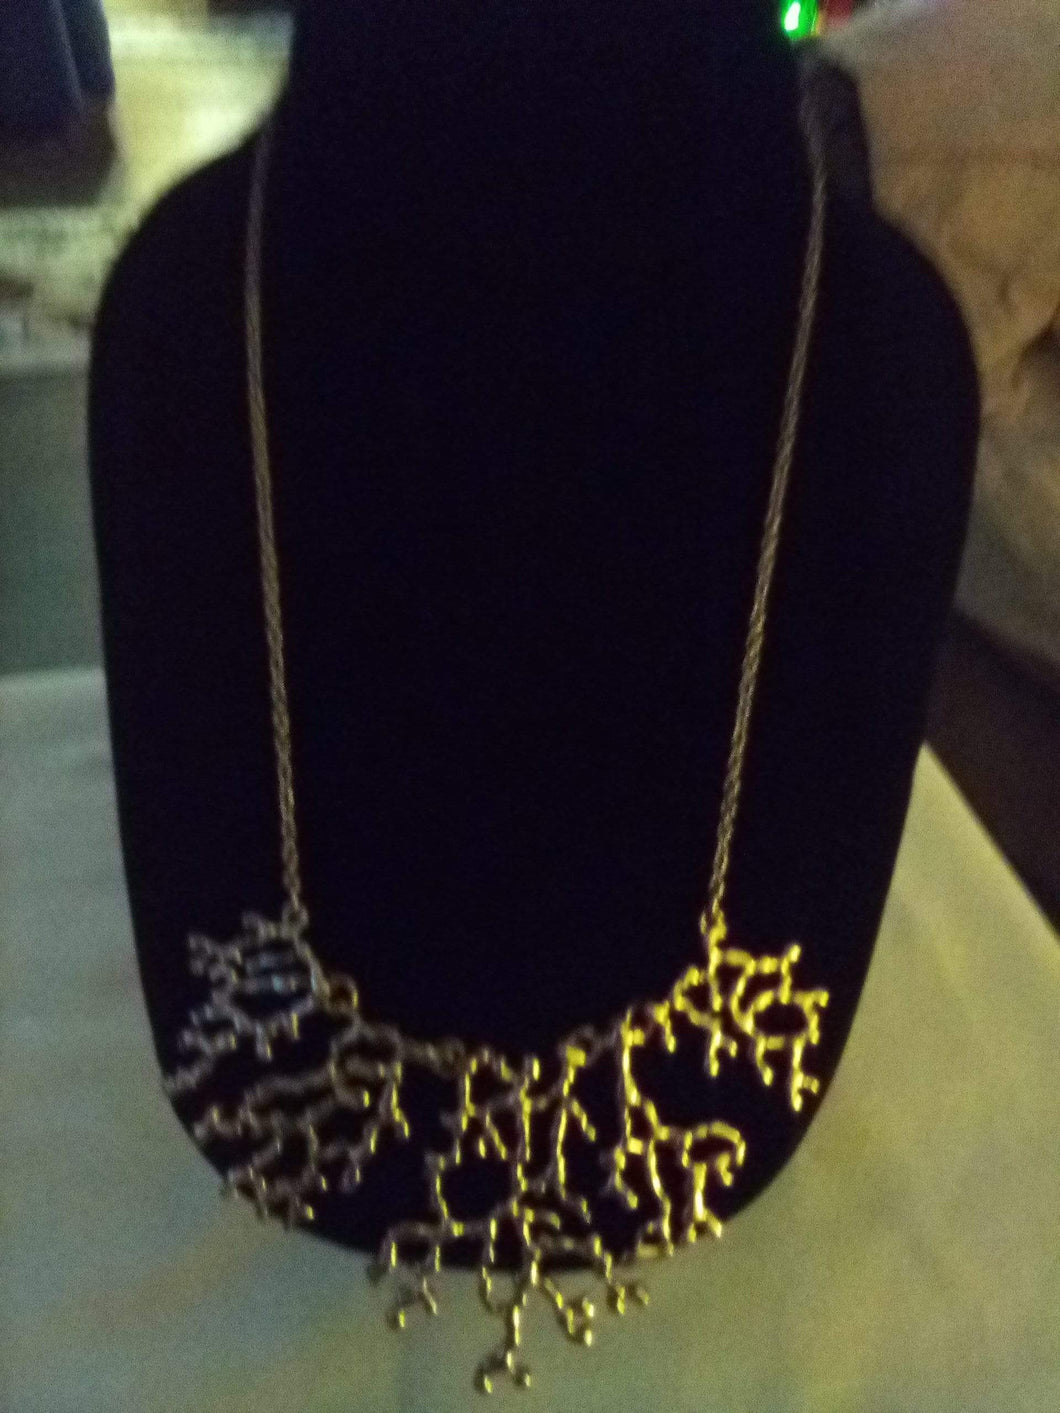 Neat gold tone necklace with attached decor - B&P'sringsnthings